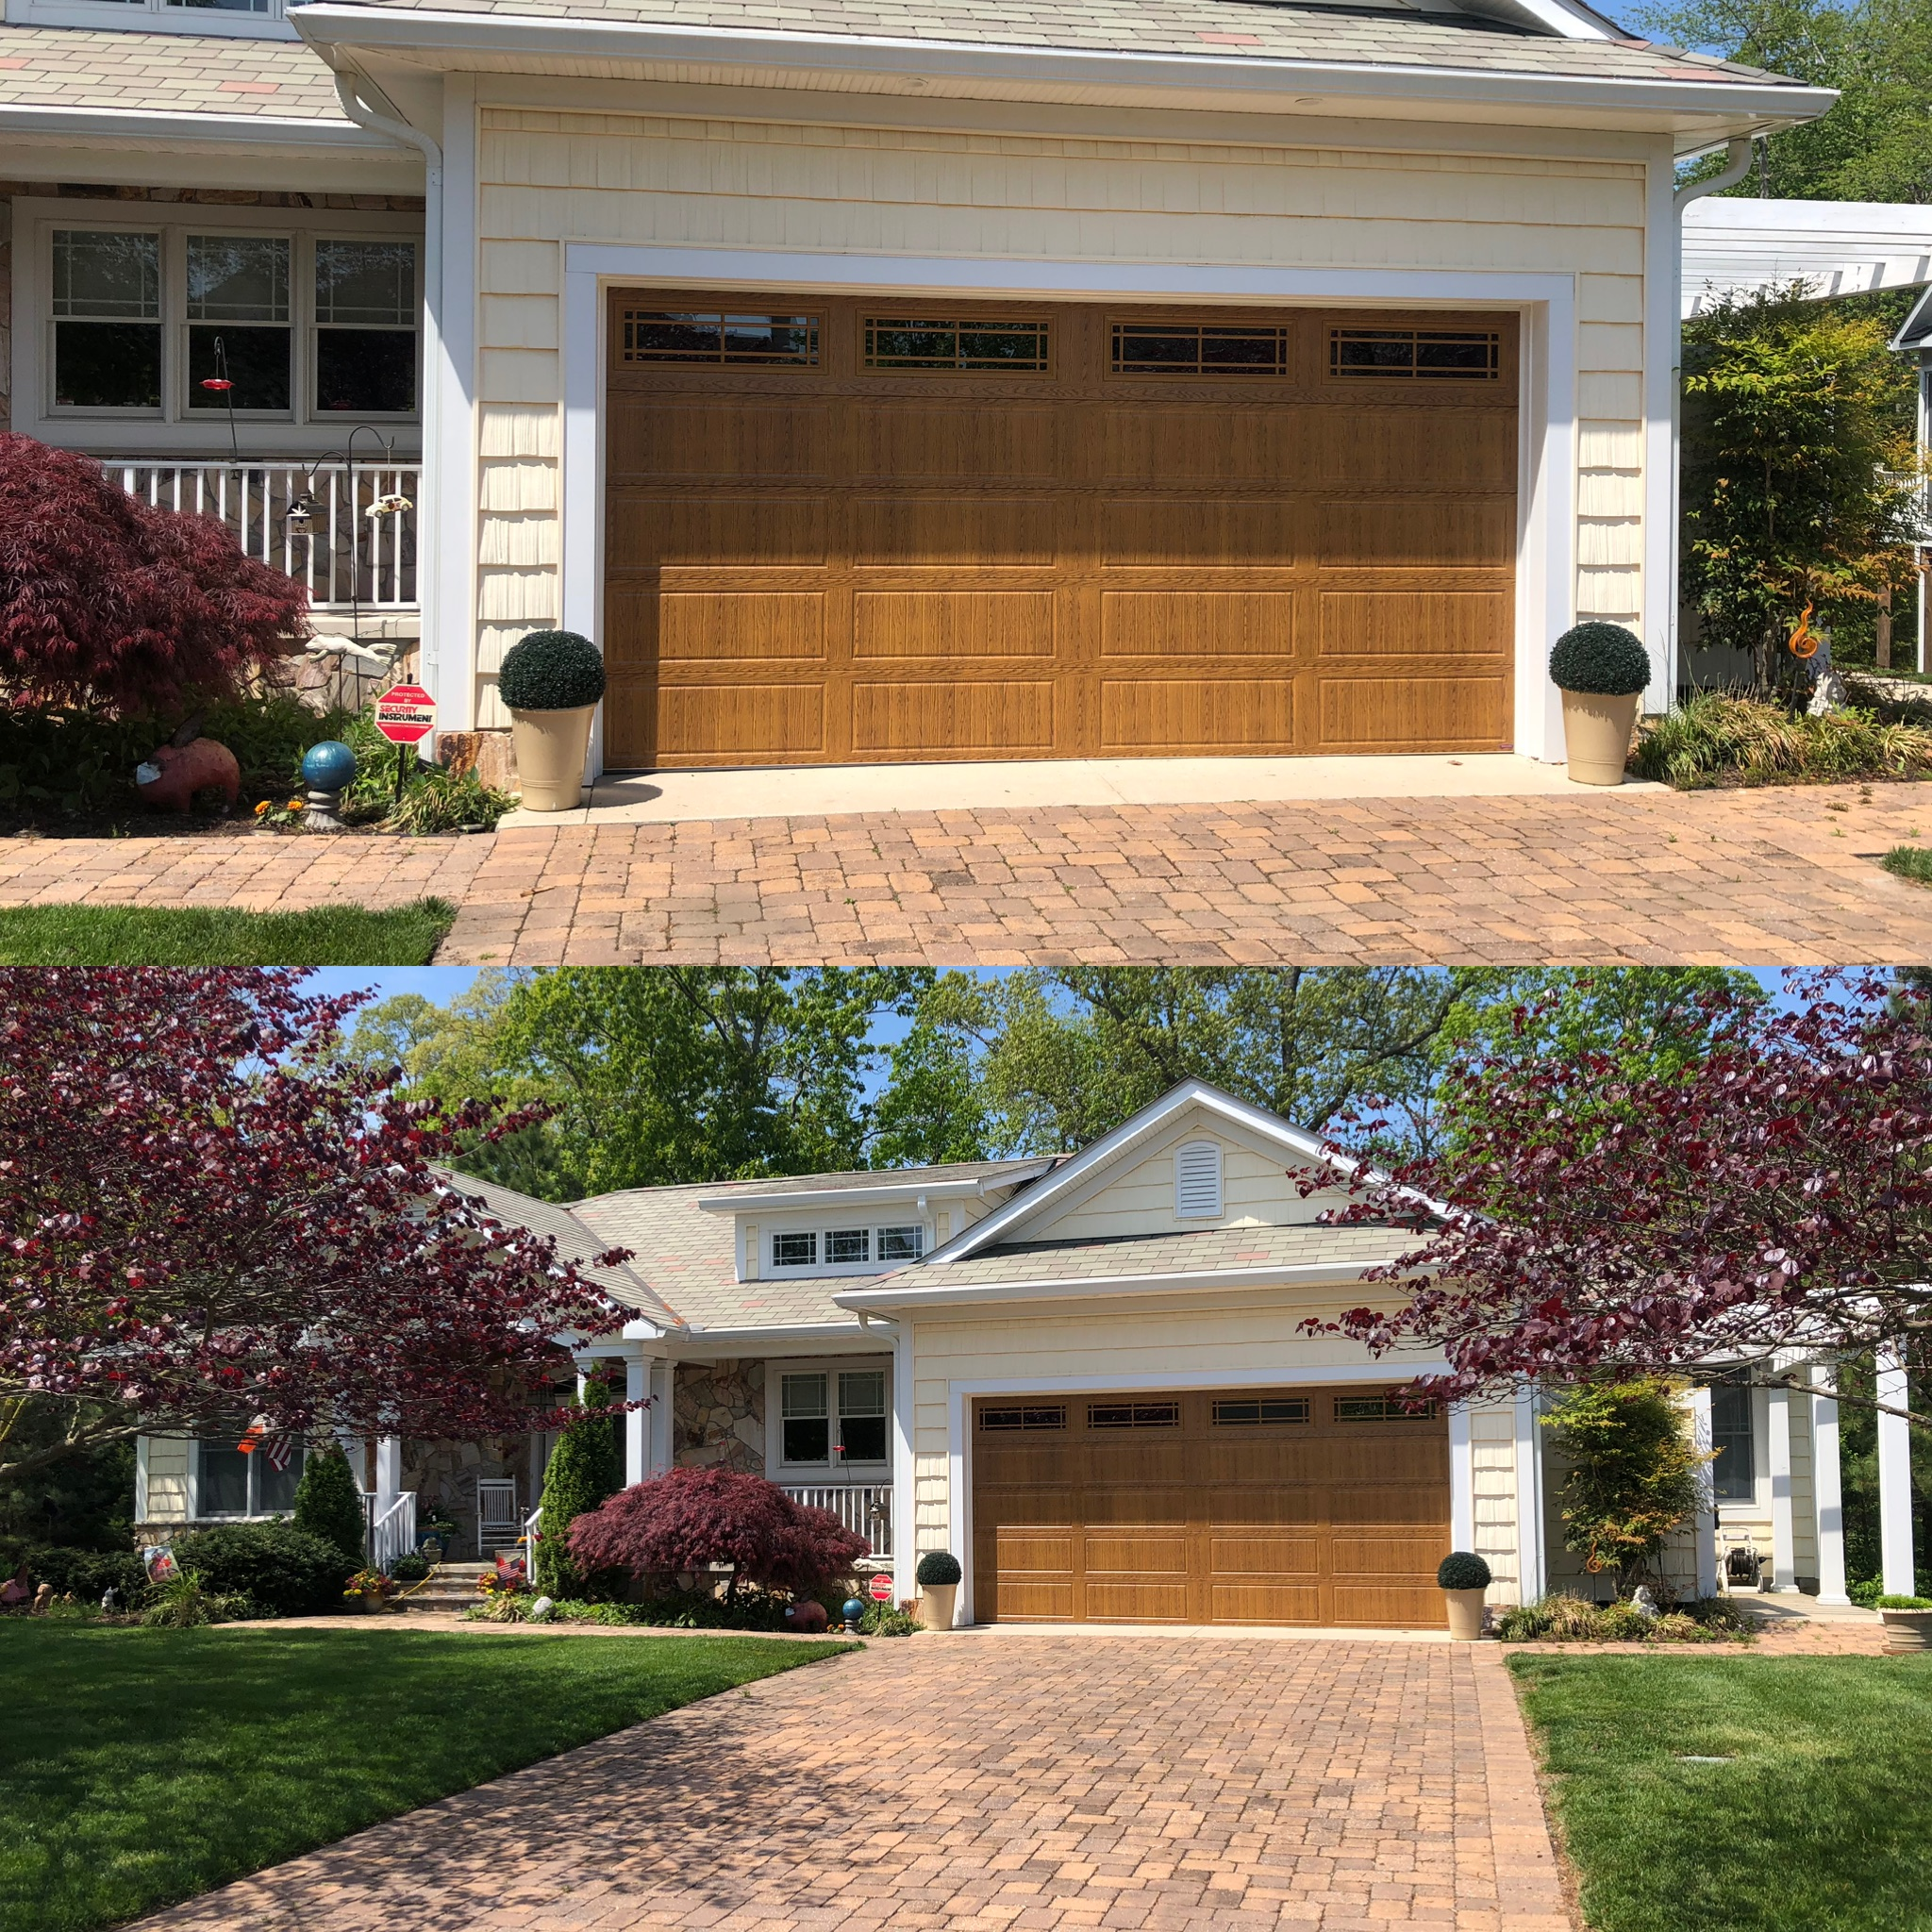 """Replacing a garage door has never been so easy and rewarding. The reviews on the Expert Overhead Doors website indicated a high satisfaction rating and also alerted owner, Randy, to our interest in his services. He contacted us immediately and visited the same day to talk personally about his company and how he could create the garage door design that we wanted. Randy returned the next day with samples, price , and a starting date for the project. Randy and his crew were very professional, thorough, informative, and great to work with. As a result, we have a beautiful garage door that enhances the beauty of our home even more. Thank you Expert Overhead Doors for a fantastic job well done.""""  -Teri Dunbar & Maureen Keenan"""